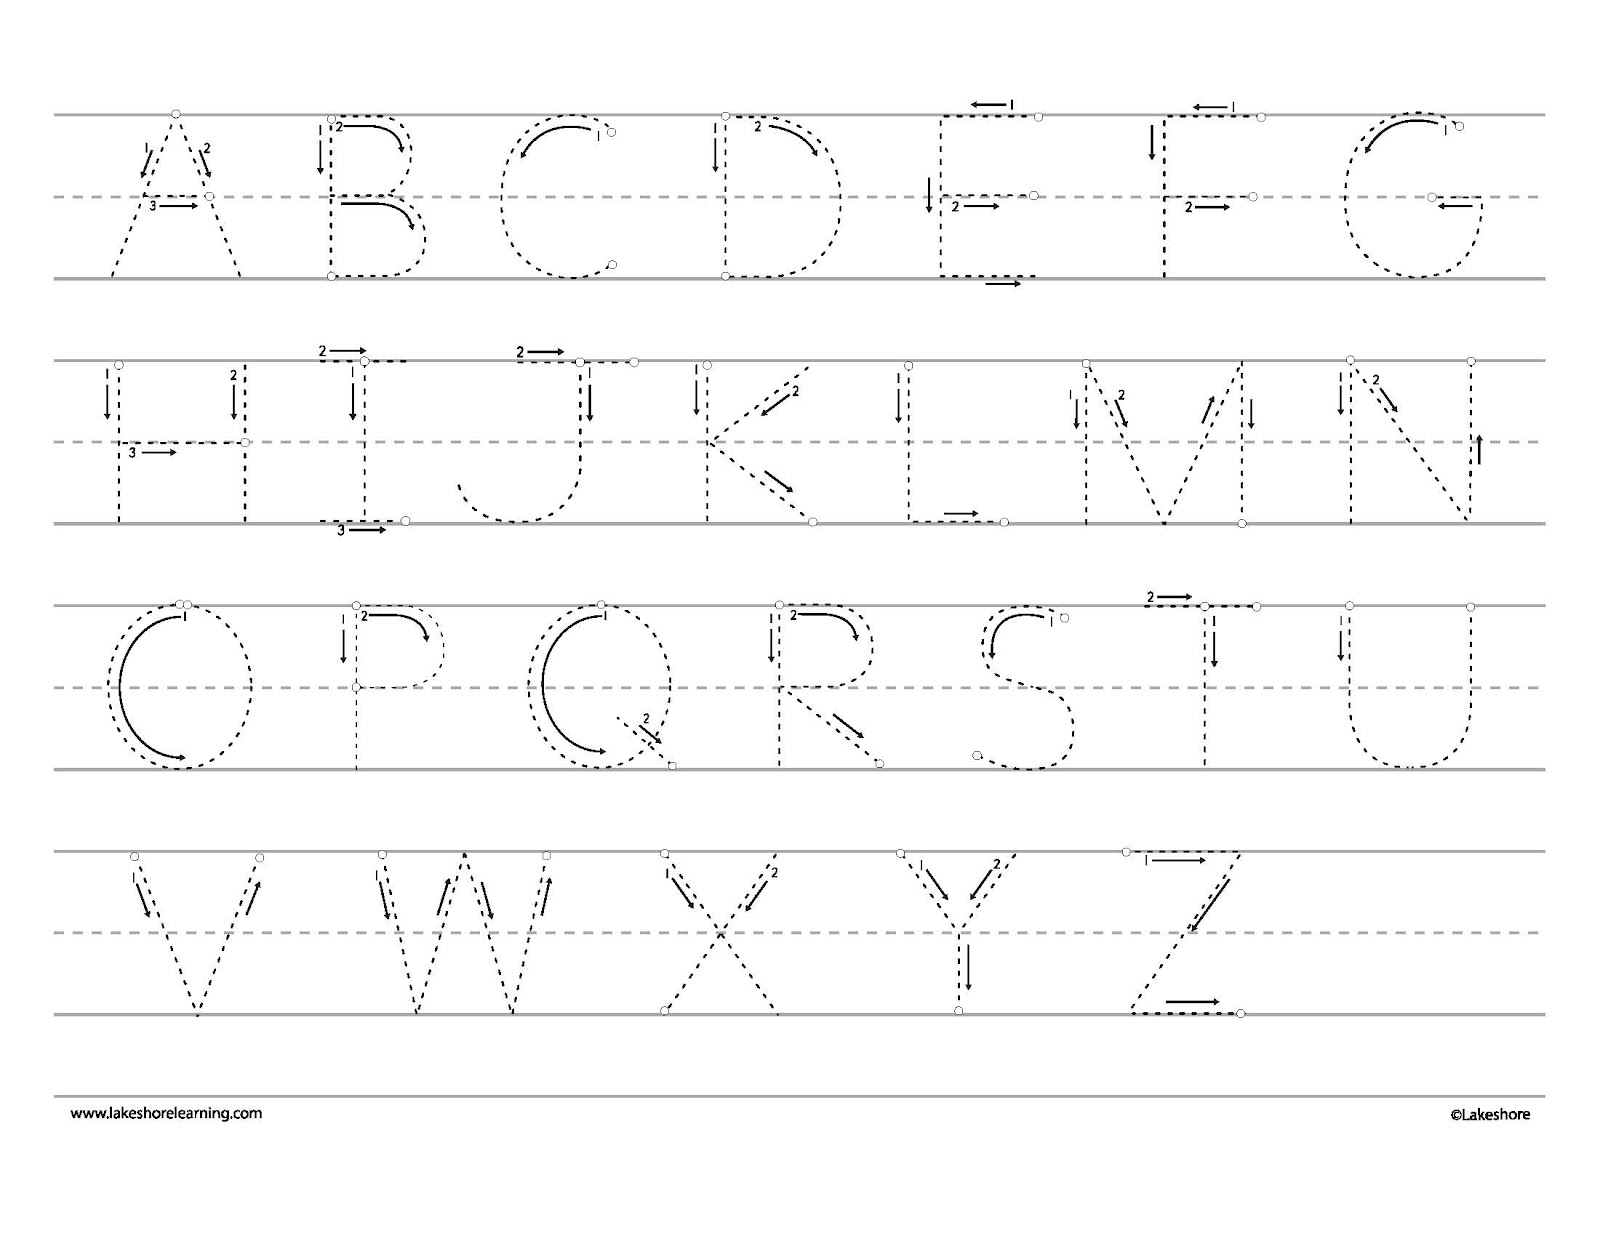 This is a picture of Playful Trace Letters for Preschoolers